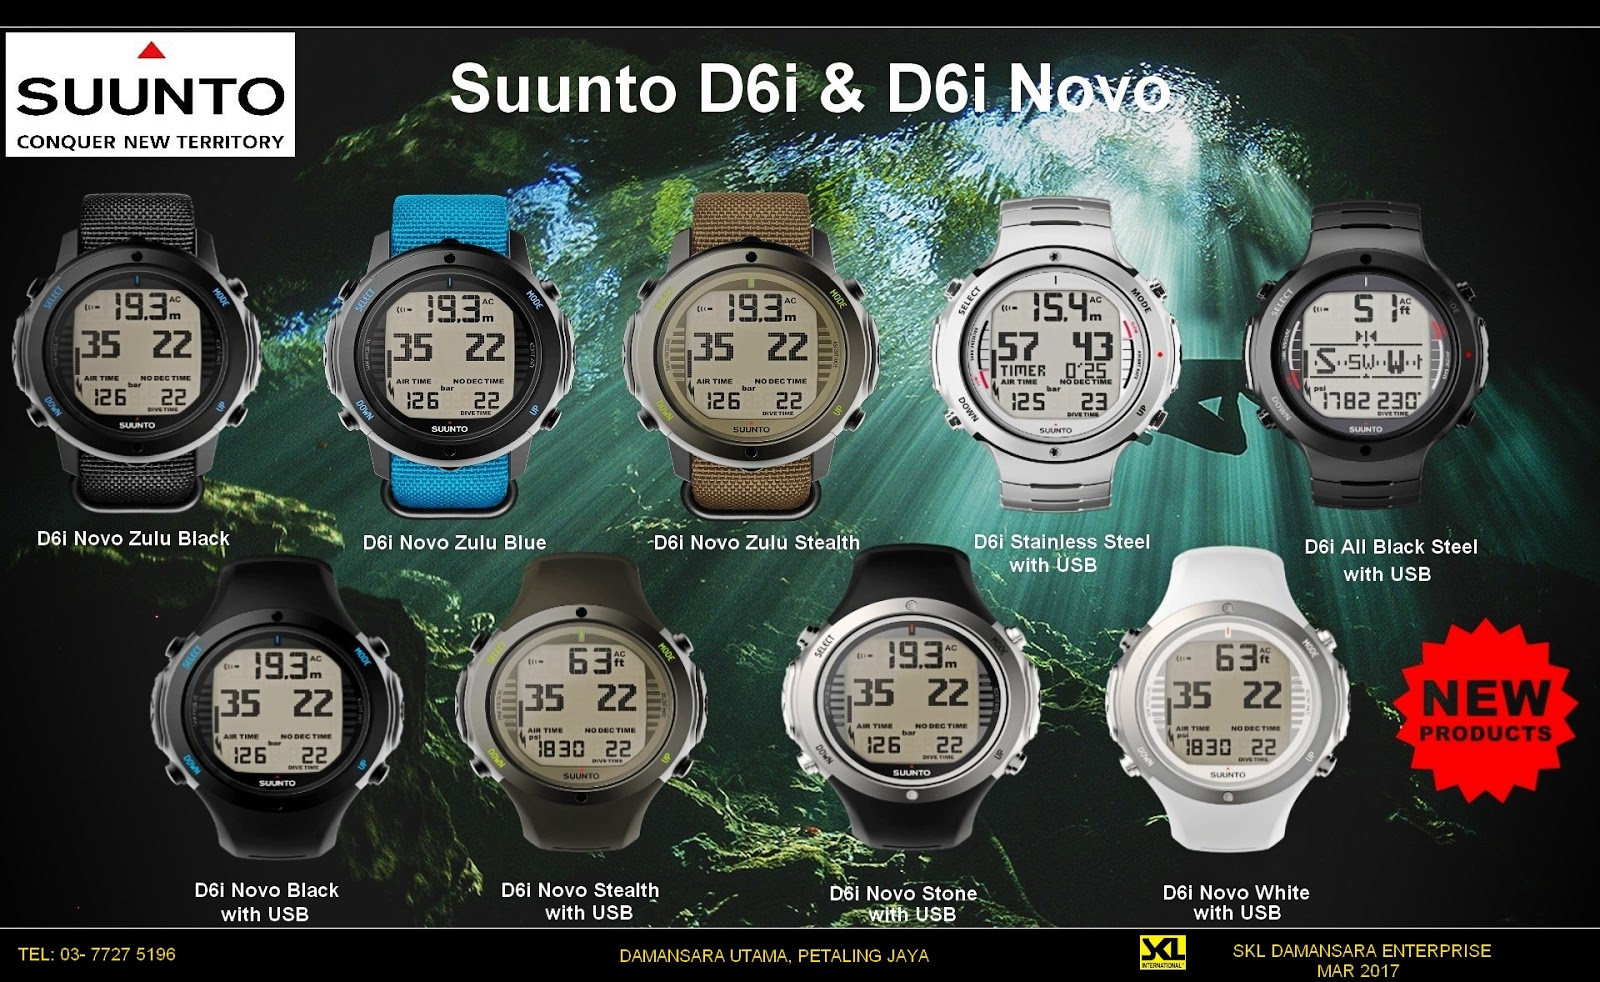 Suunto D6i Novo now available @ RM 3050